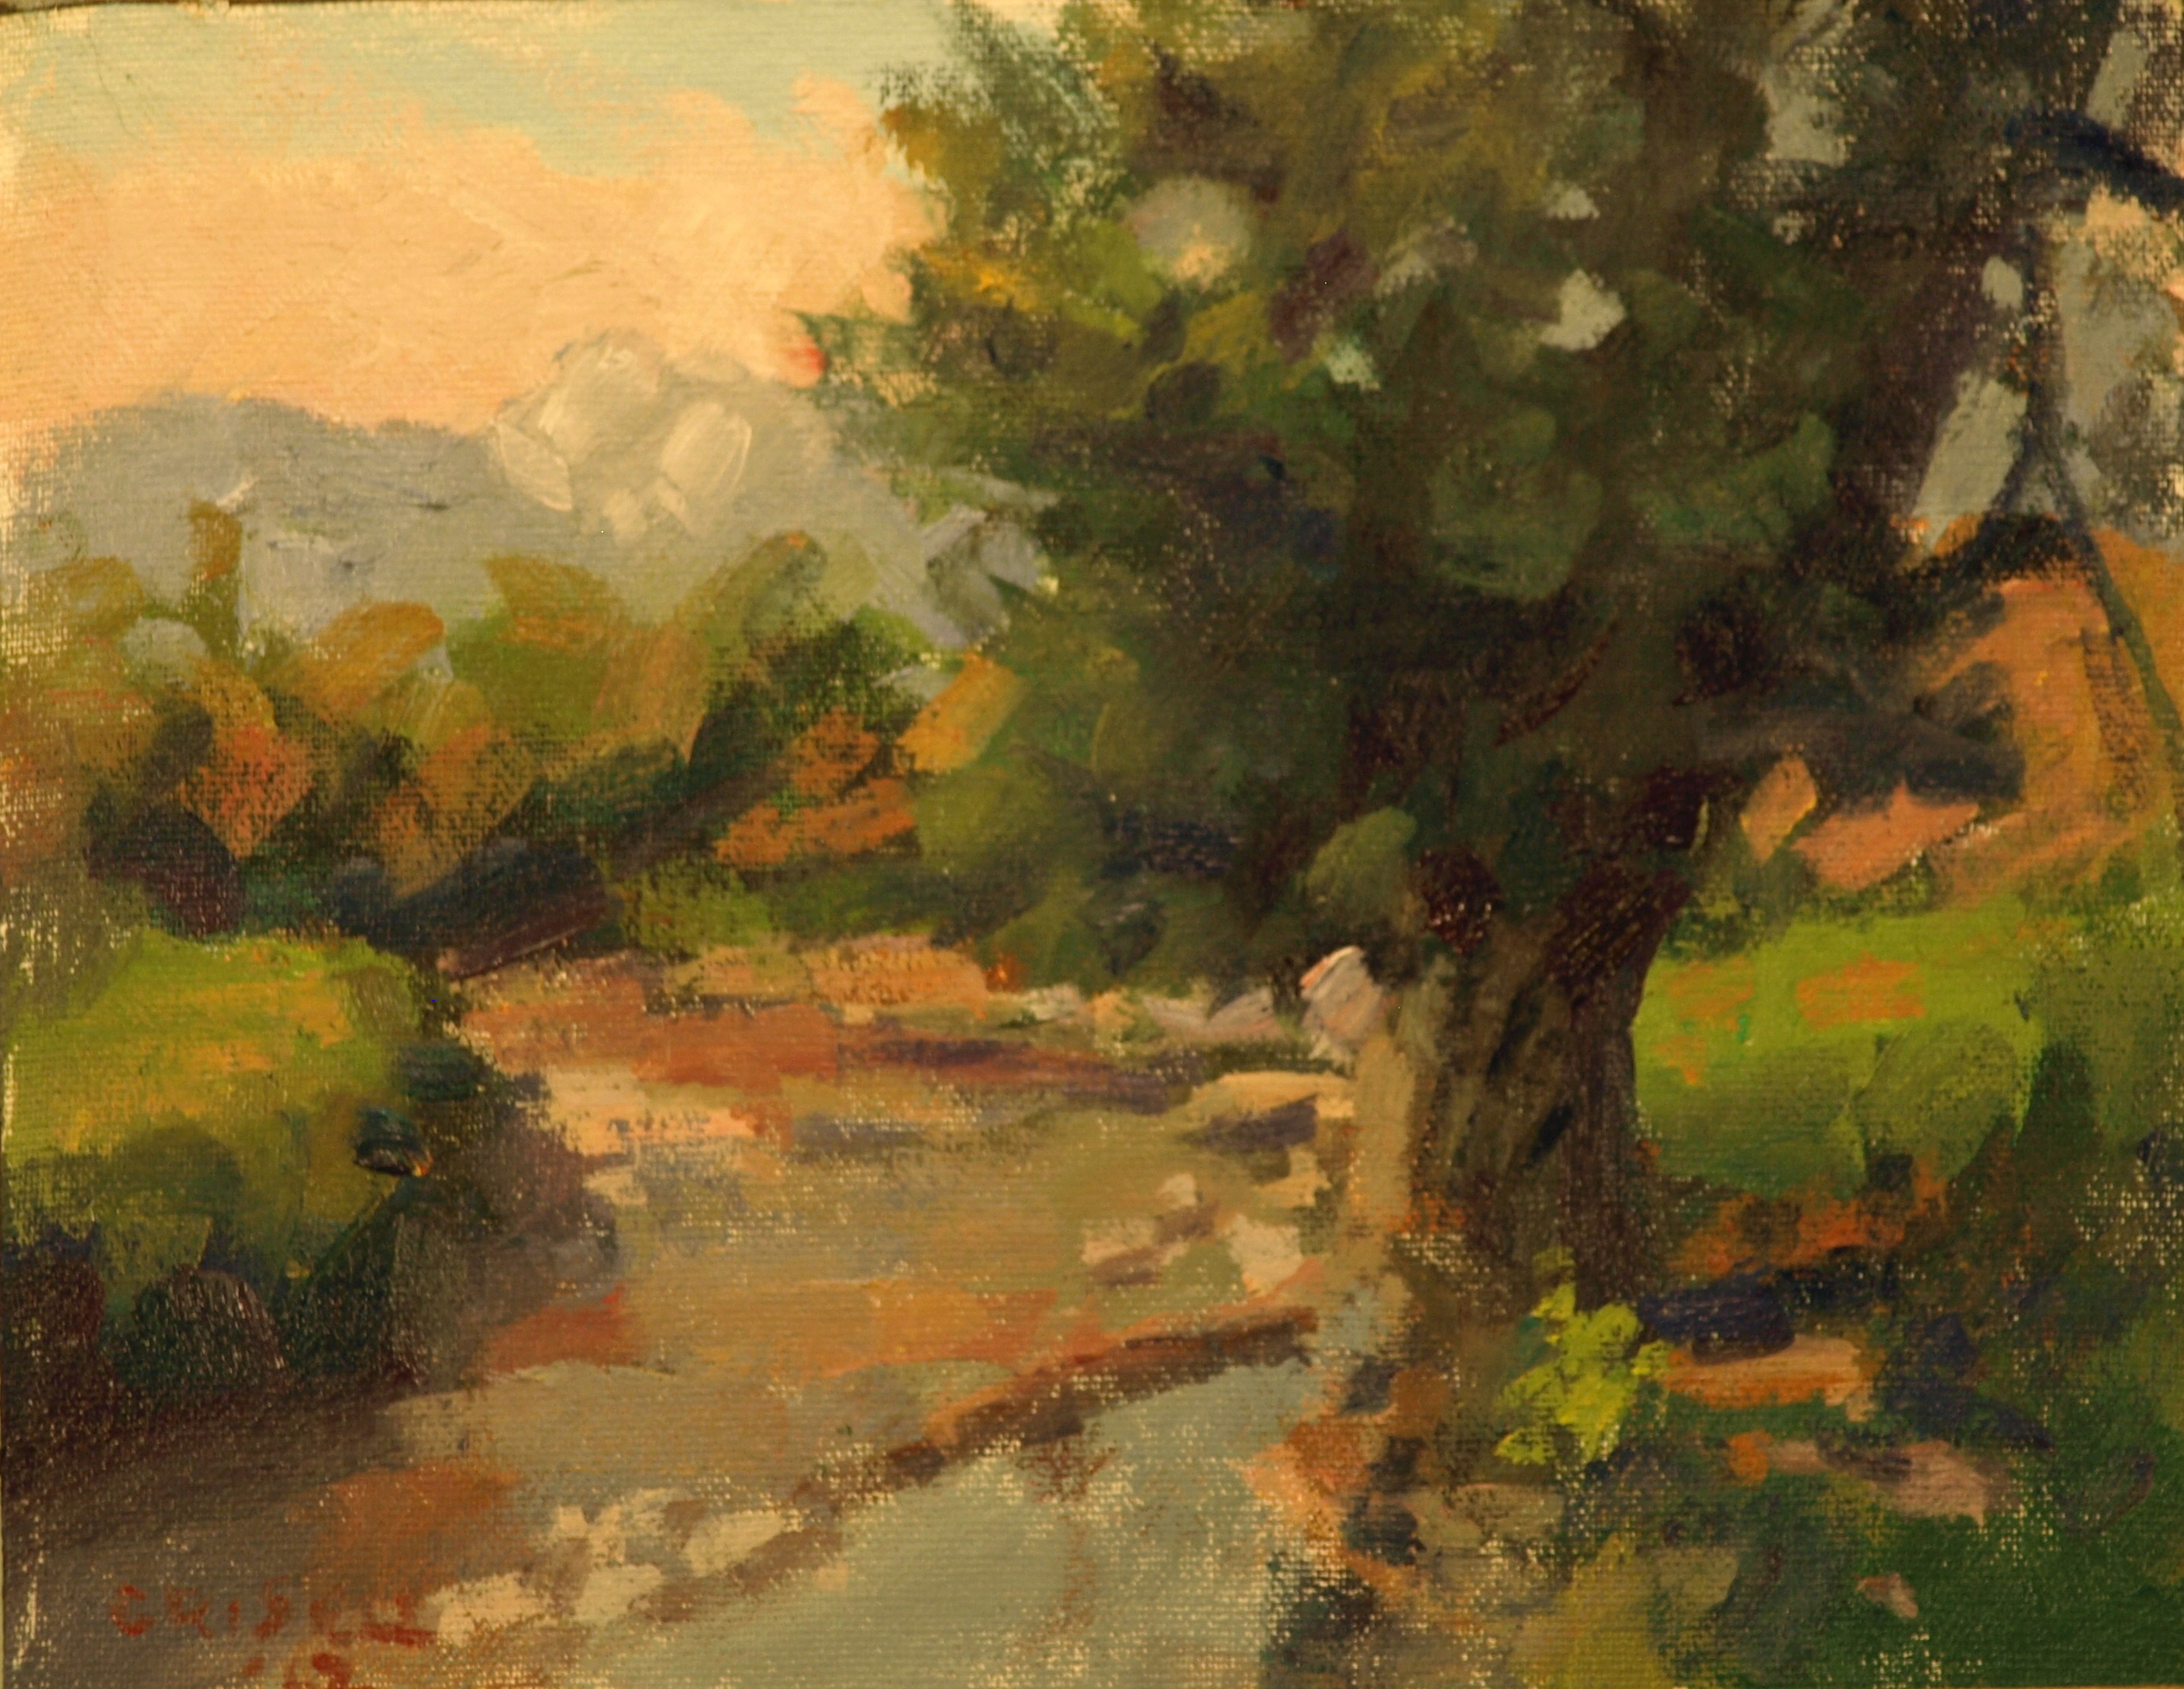 Cottonwood, Oil on Canvas on Panel, 8 x 10 Inches, by Susan Grisell, $150